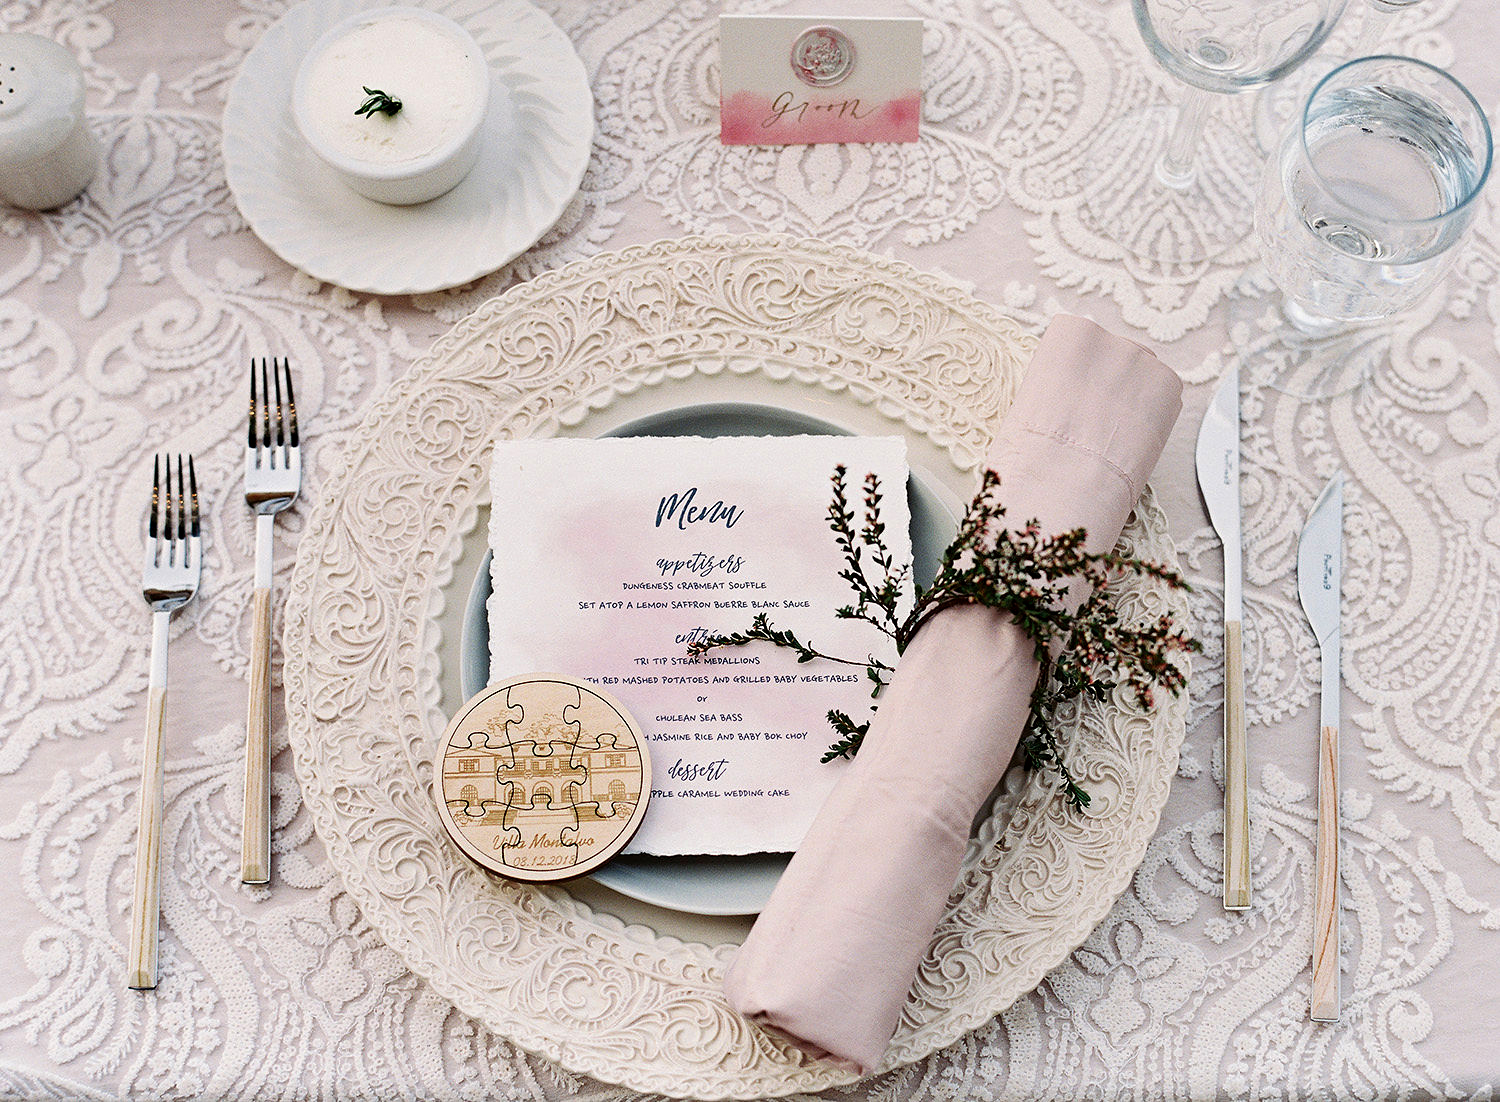 yiran yexiang wedding place setting menu napkin